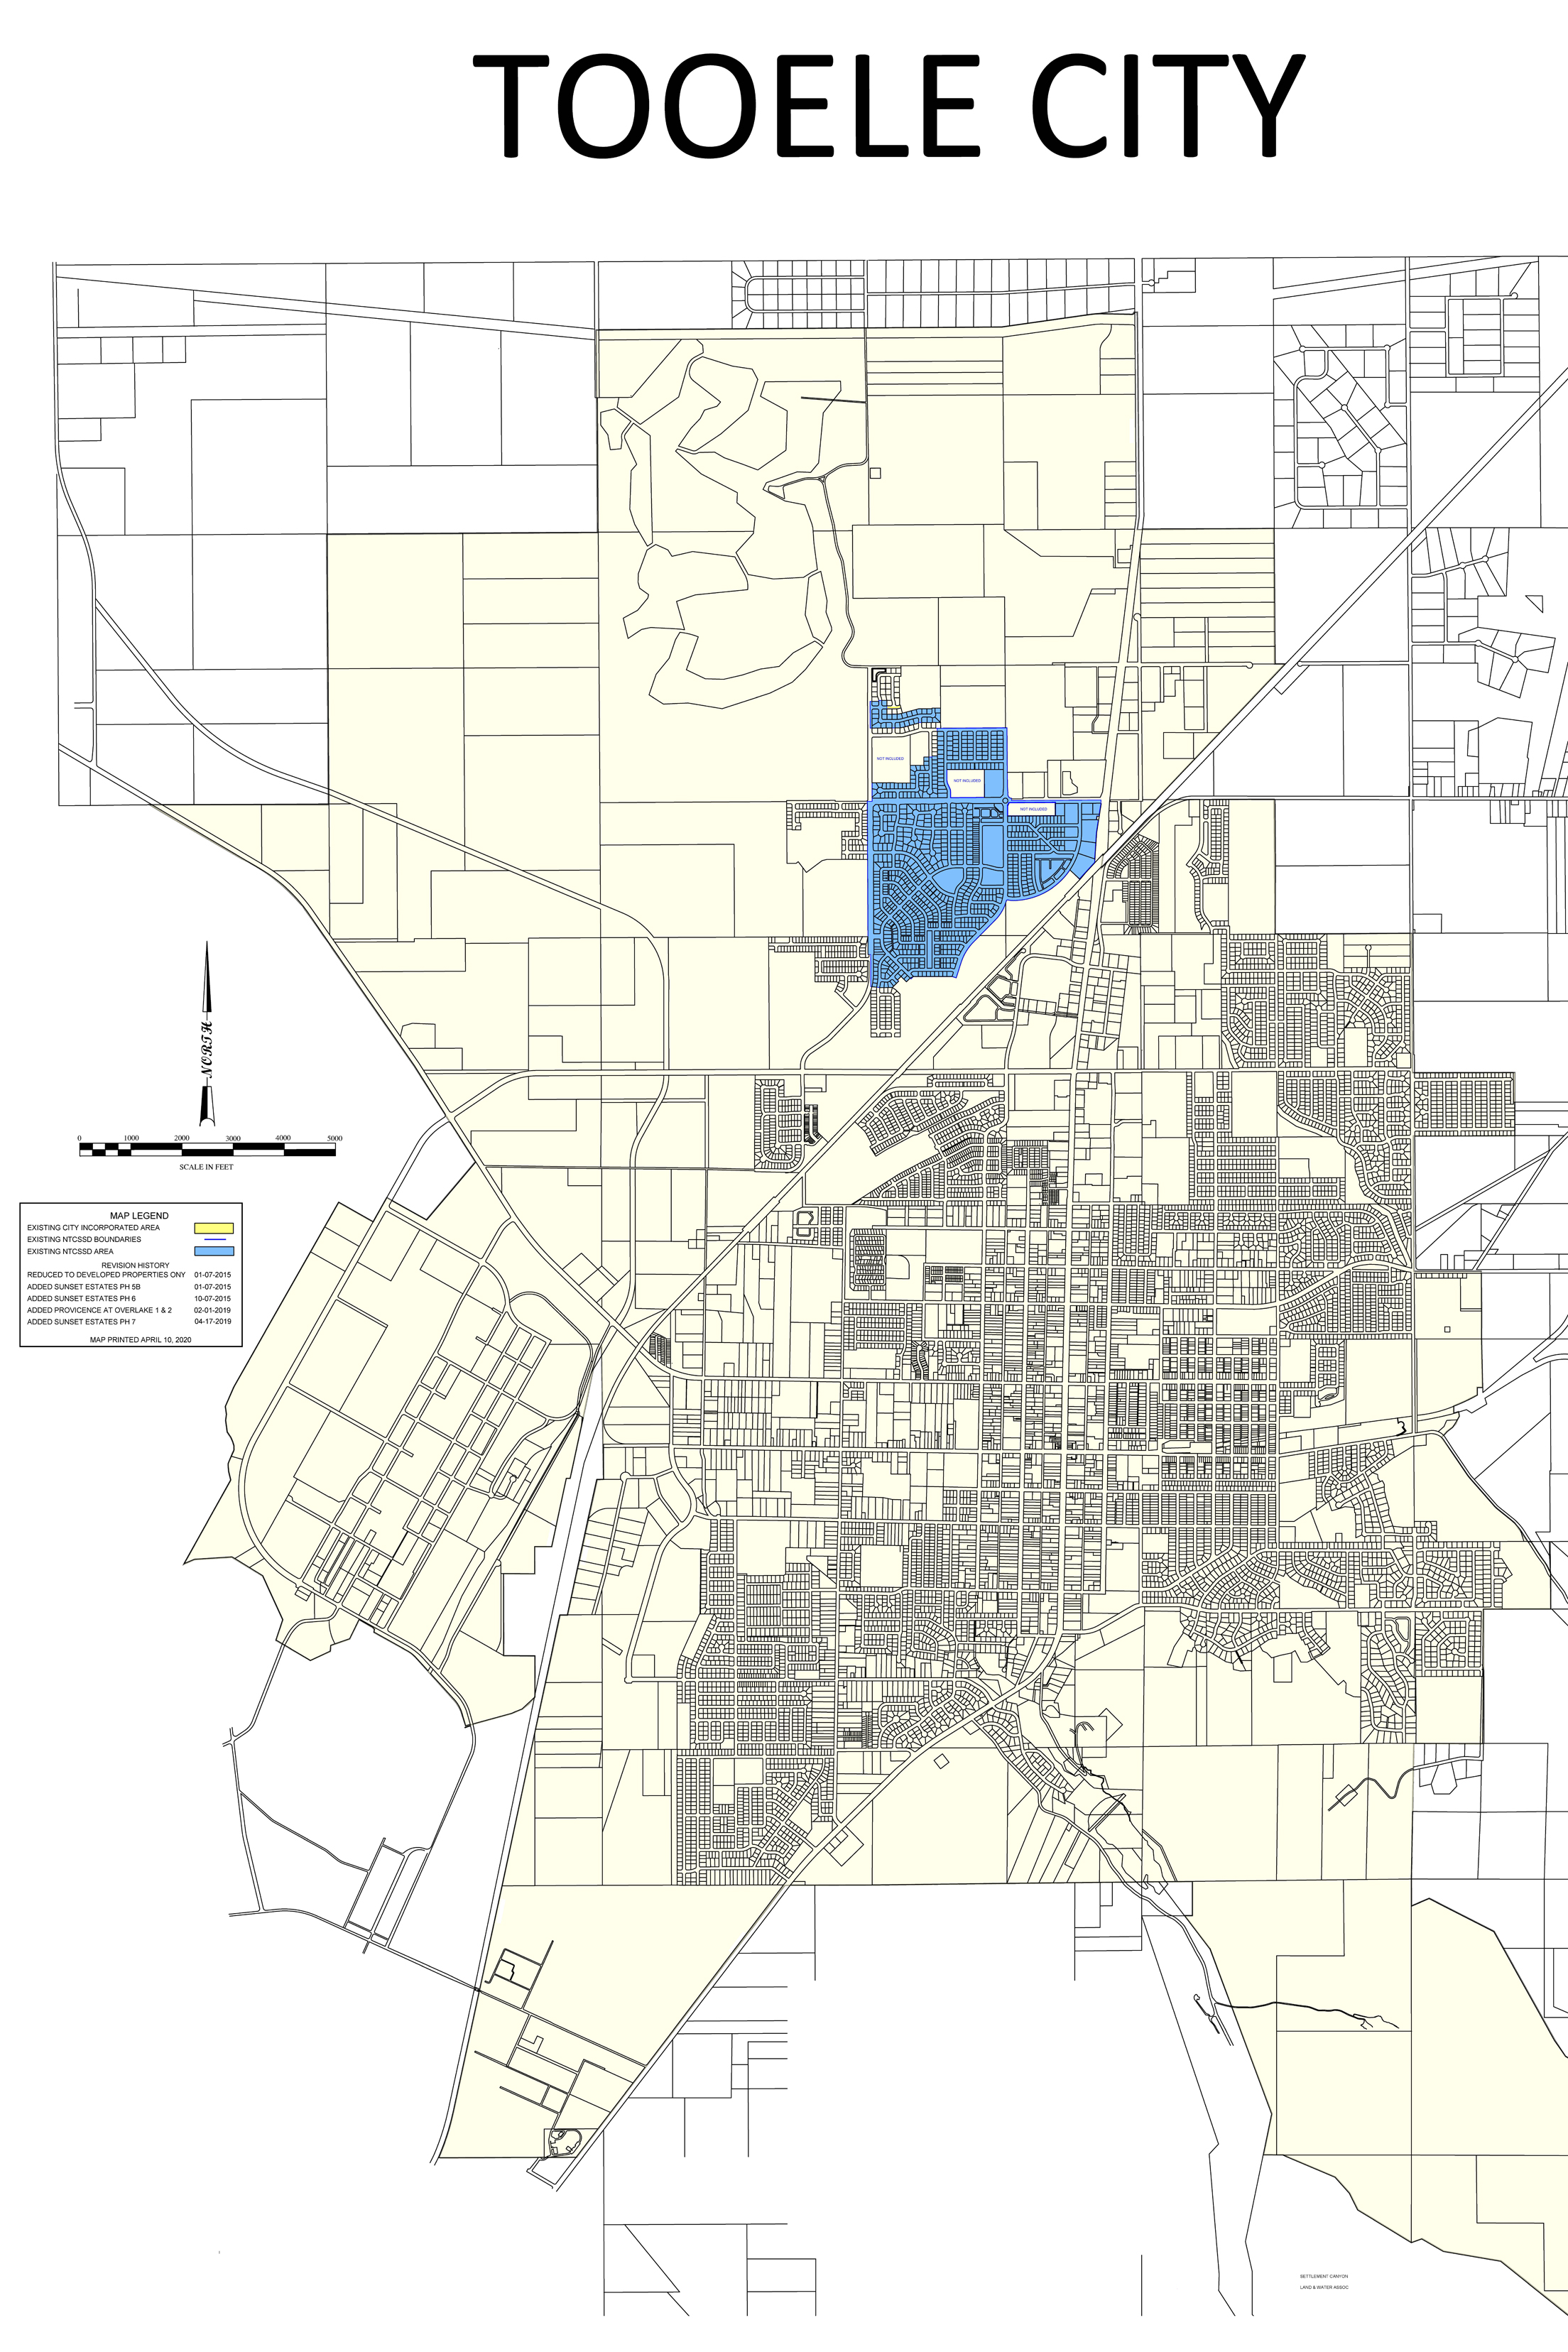 North Tooele City Special Service District Full City Map 04-09-2020